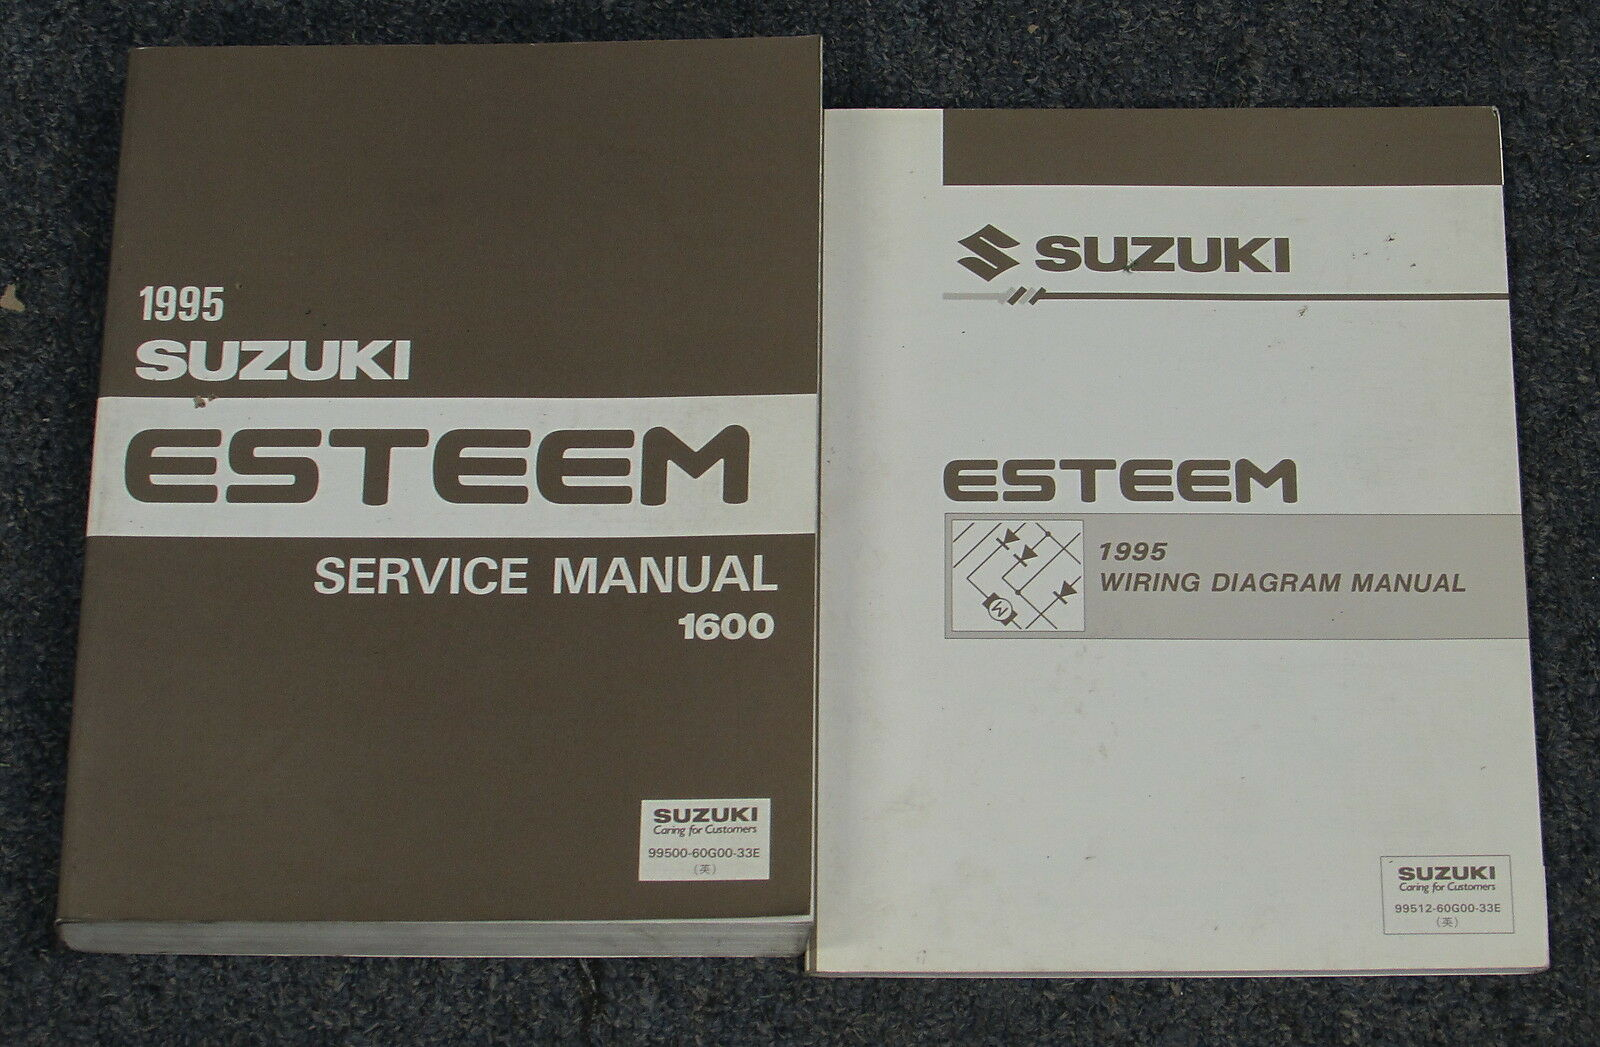 1995 Suzuki Esteem Service Manual Set 1600 3299 Picclick 2002 Engine Diagram 1 Of 1only Available